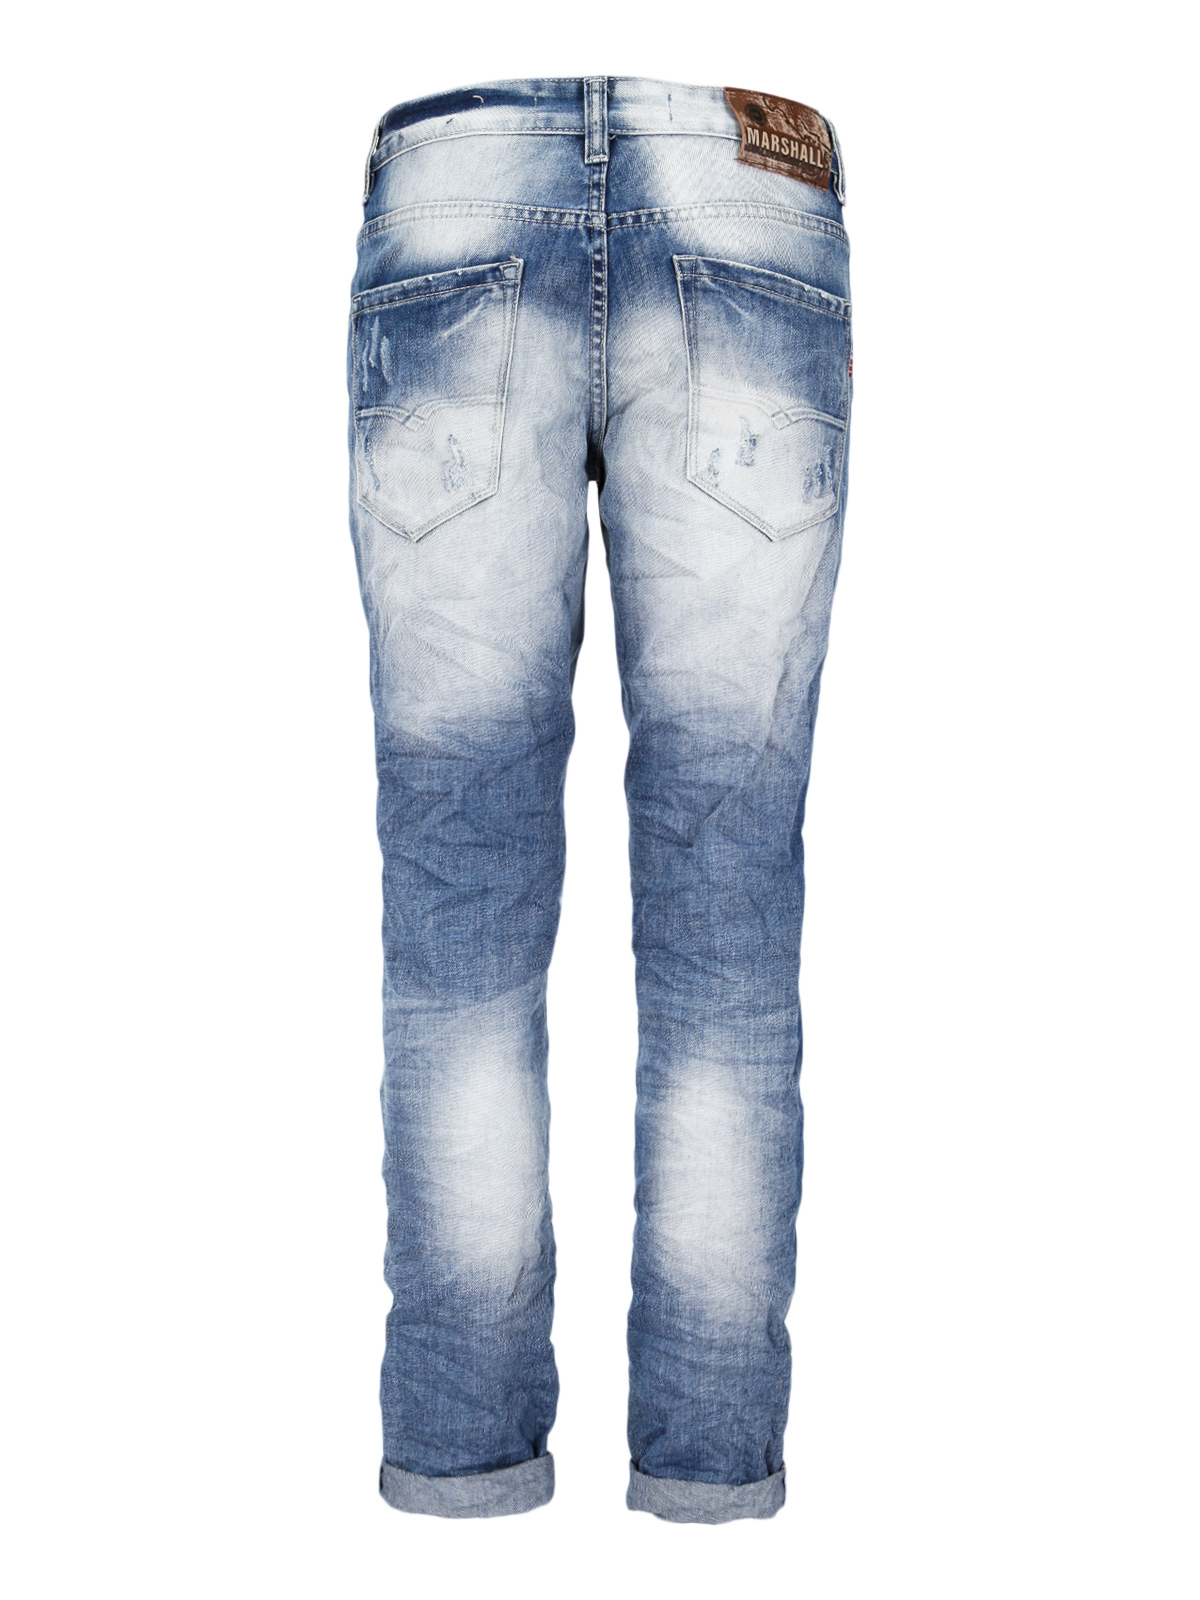 Jeans Worn Effect With Tear